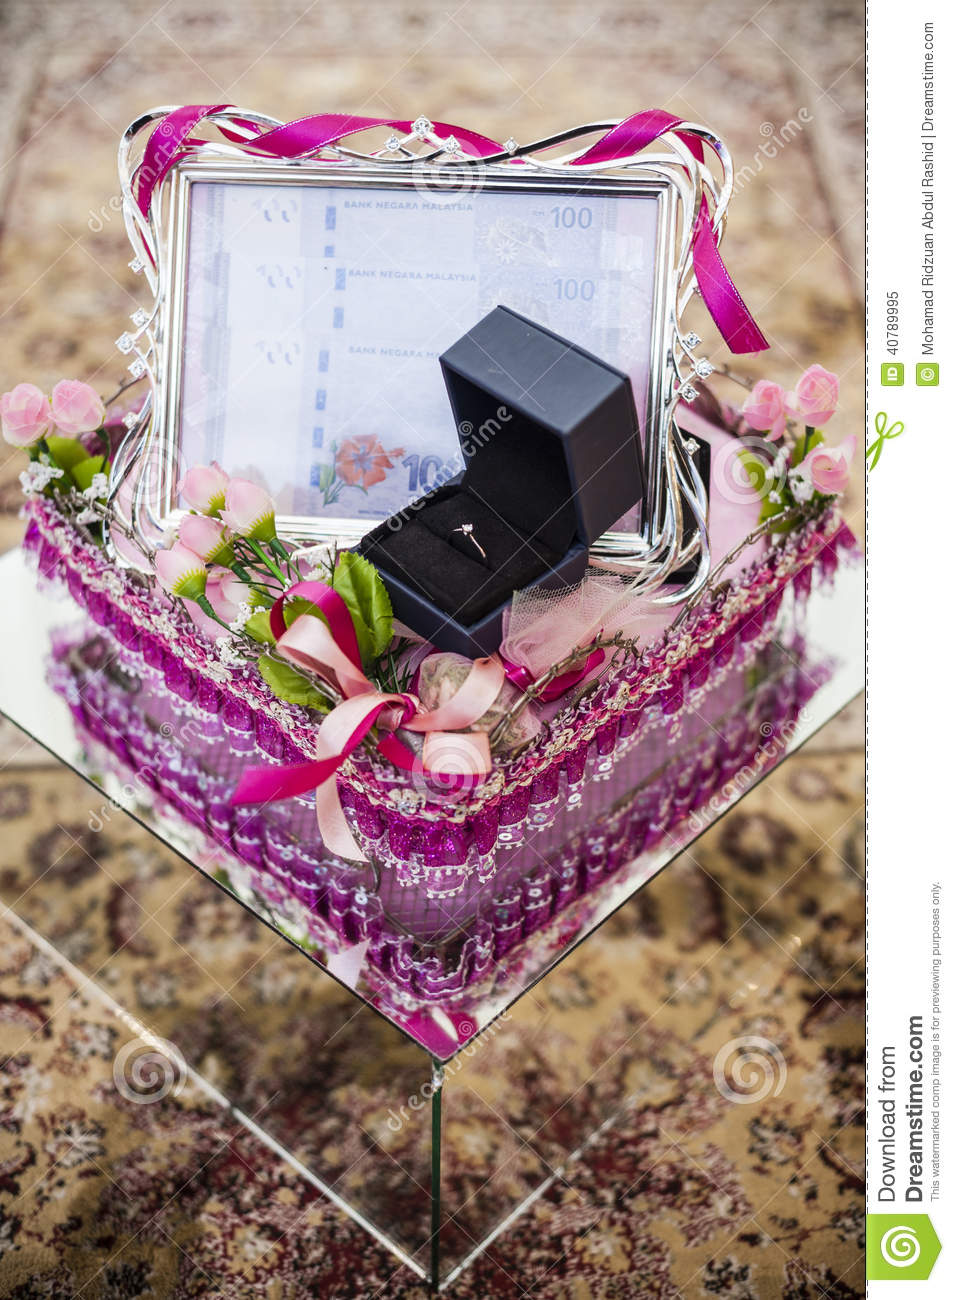 Wedding Couple Gift Exchange : Wedding Gift Decoration Stock PhotoImage: 40789995